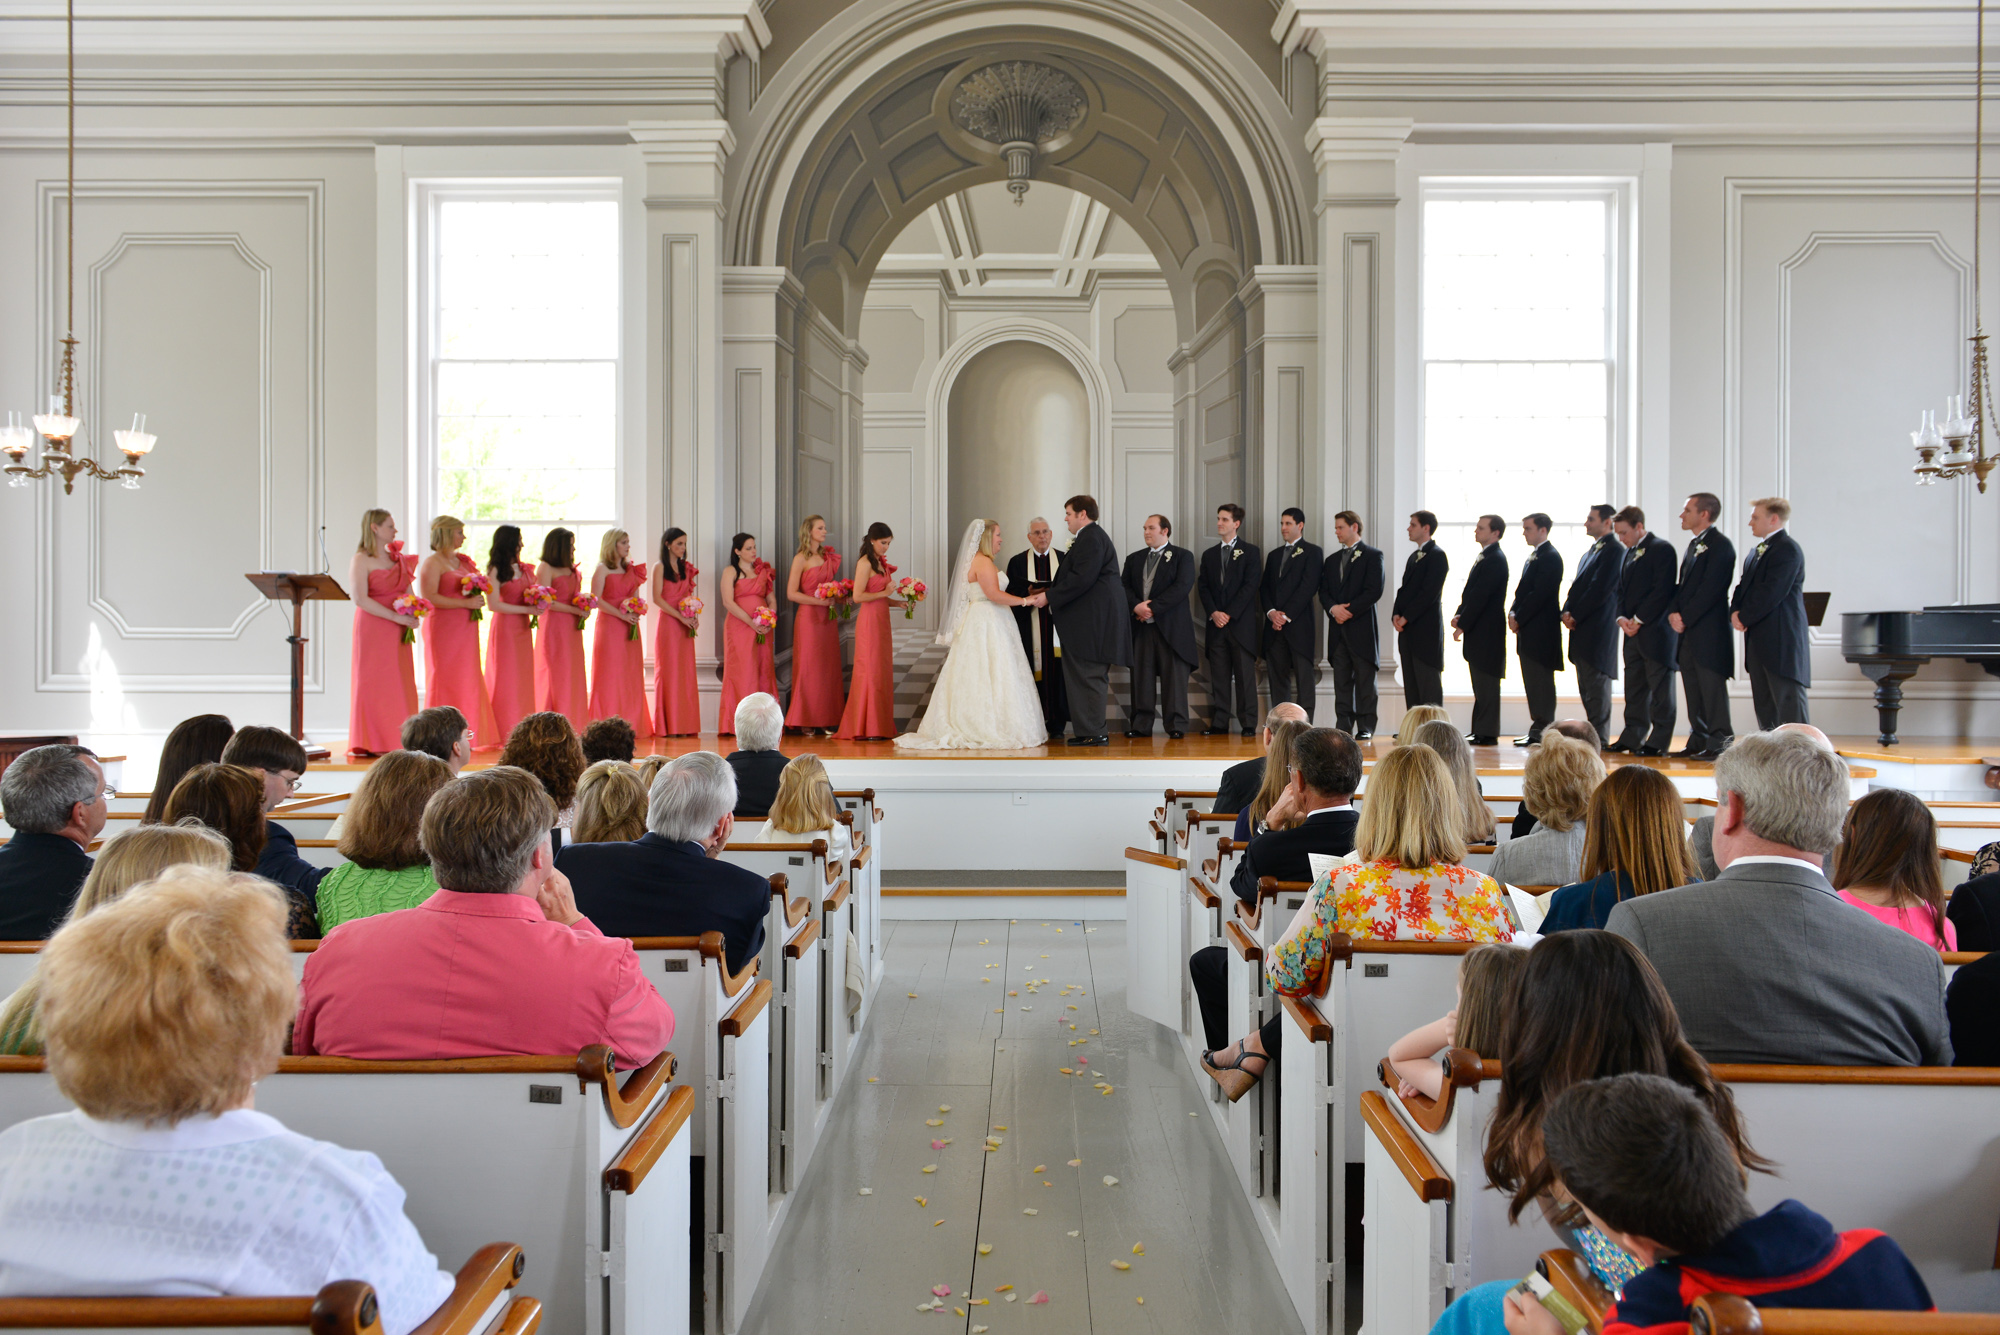 A wedding ceremony inside the Old Whaling Church in Edgartown  photo by David Welch Photography